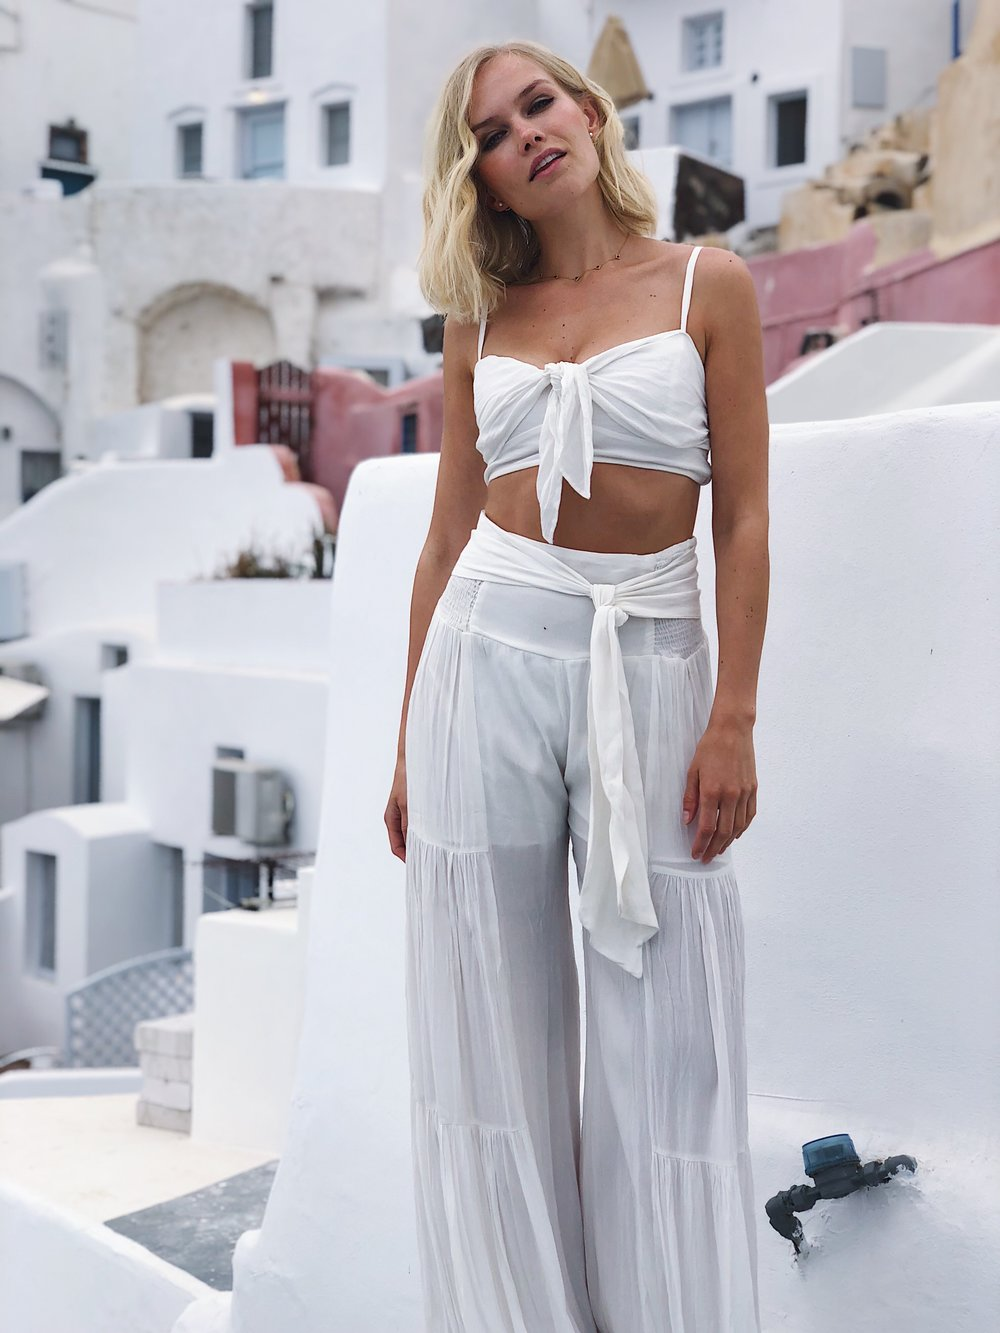 Also taken from our hotel room in Oia   Outfit from Free People